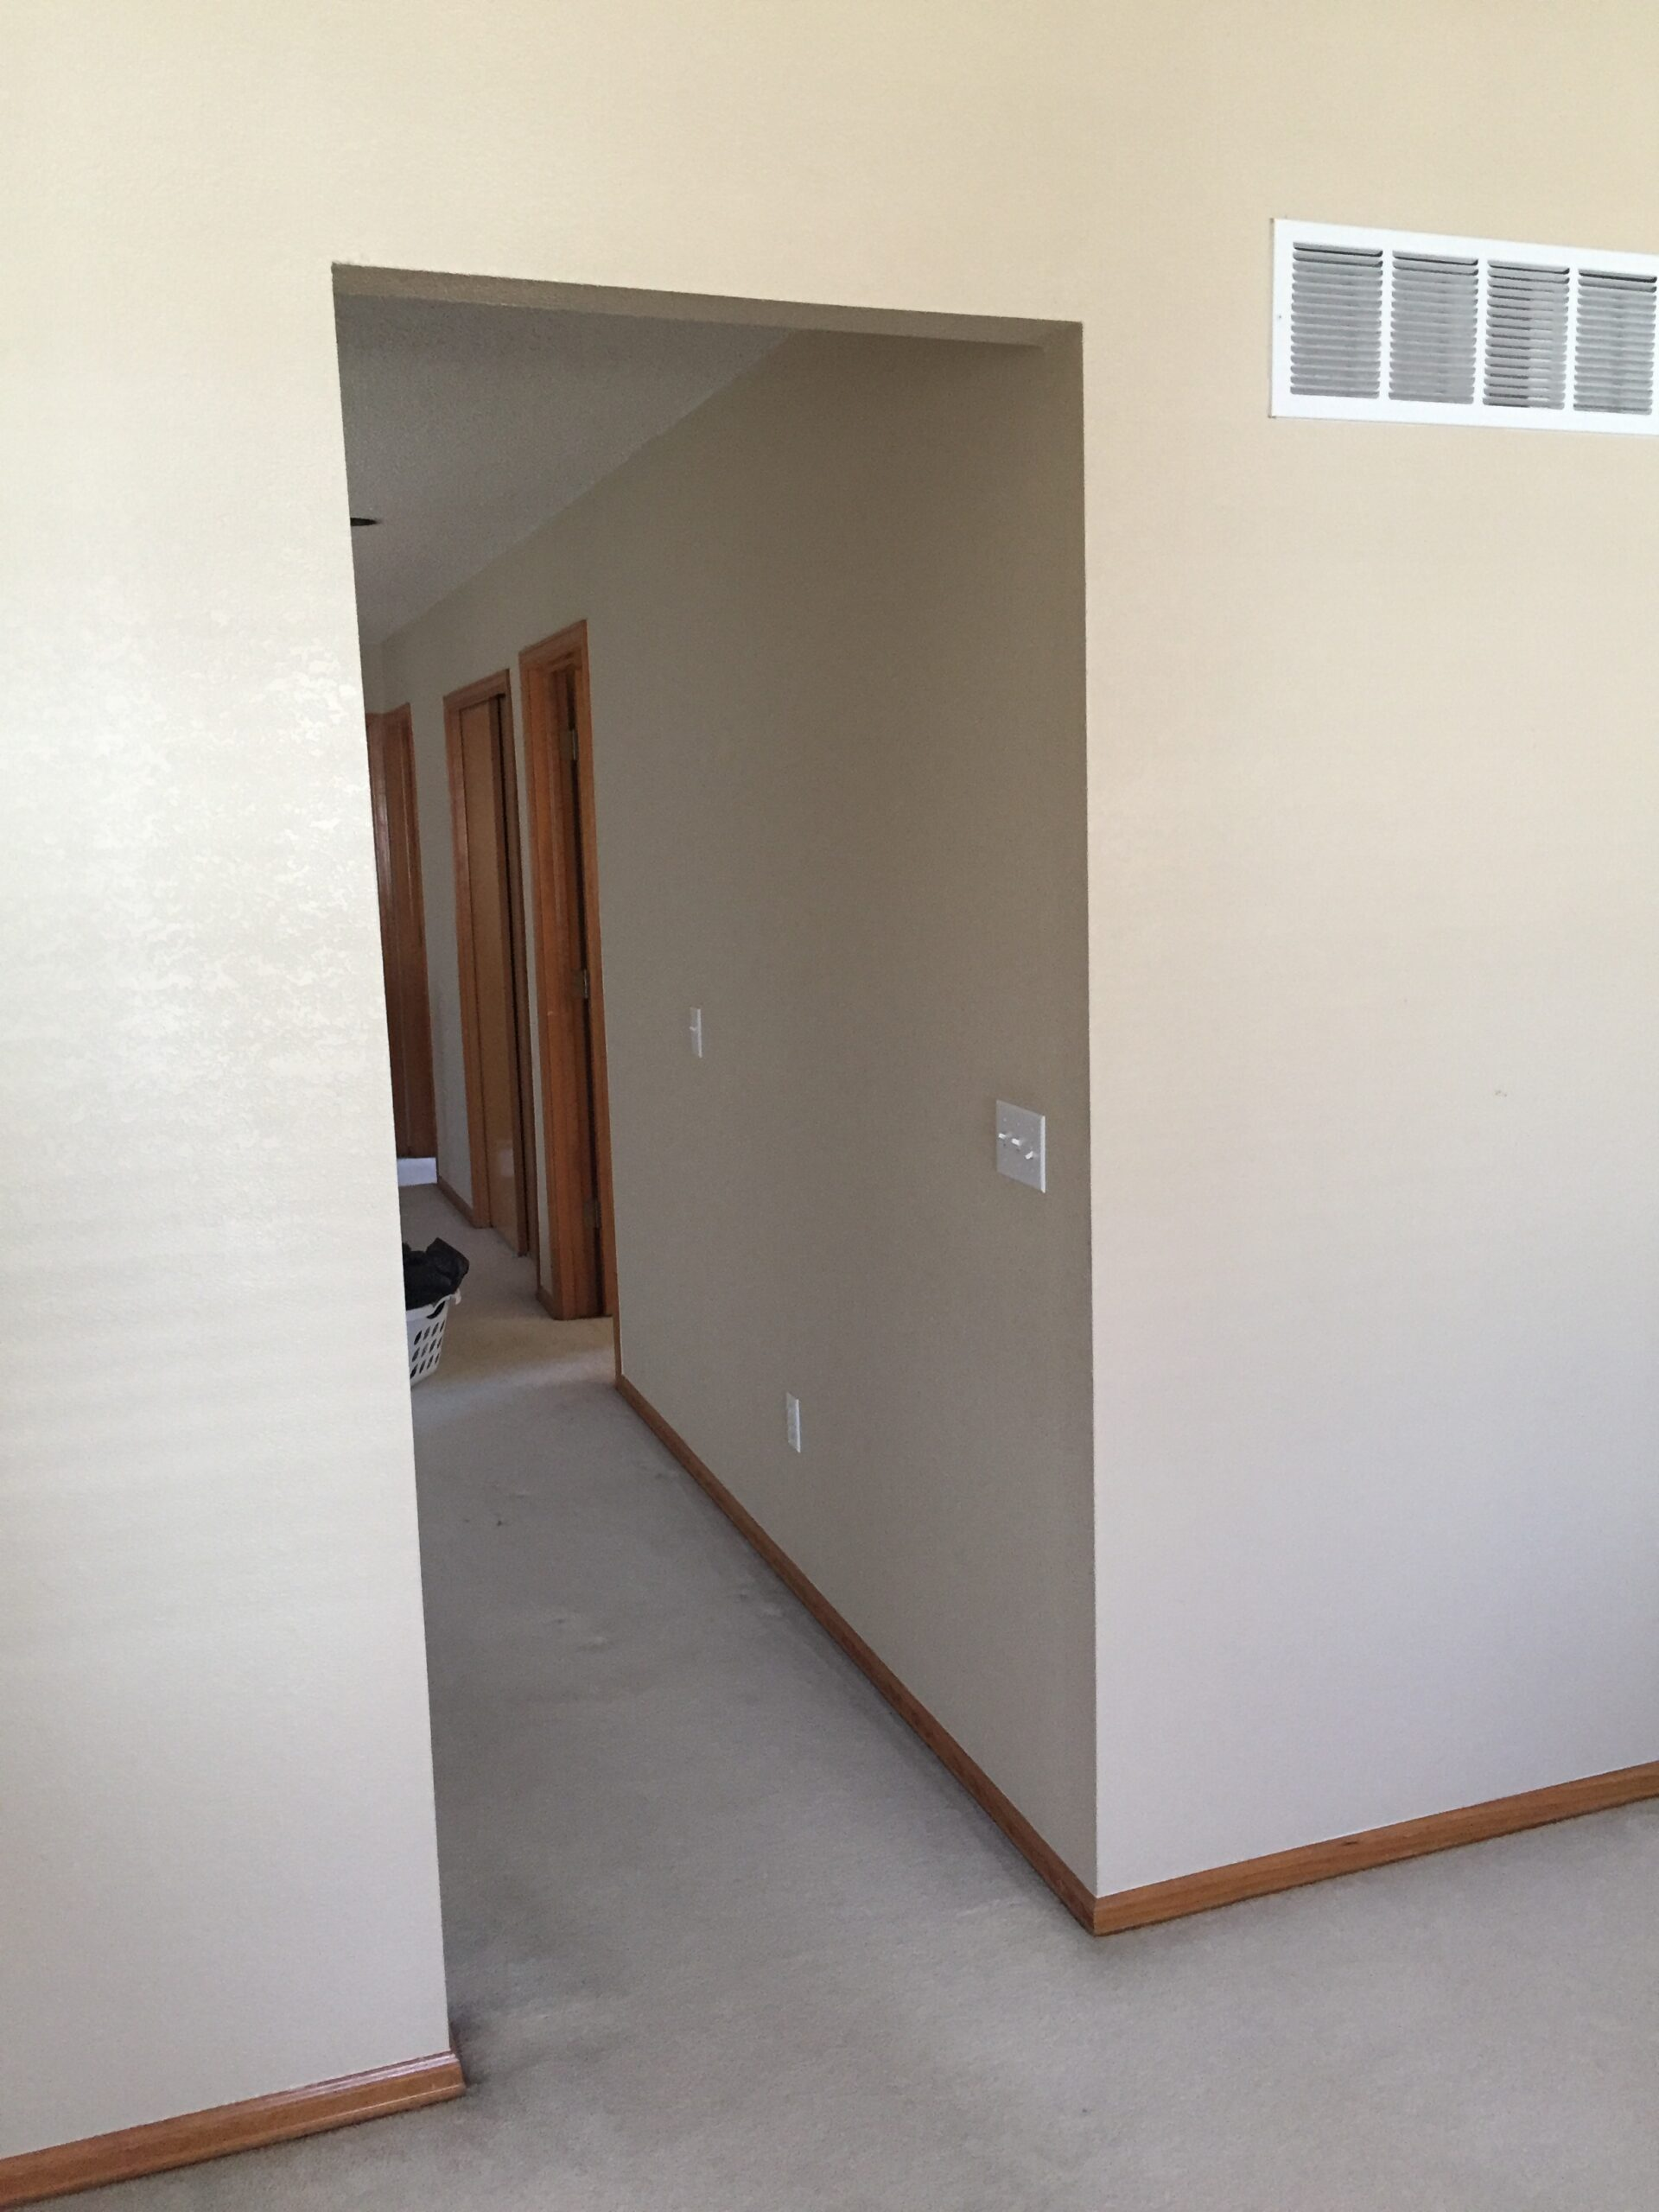 Tall walkway in hall without door